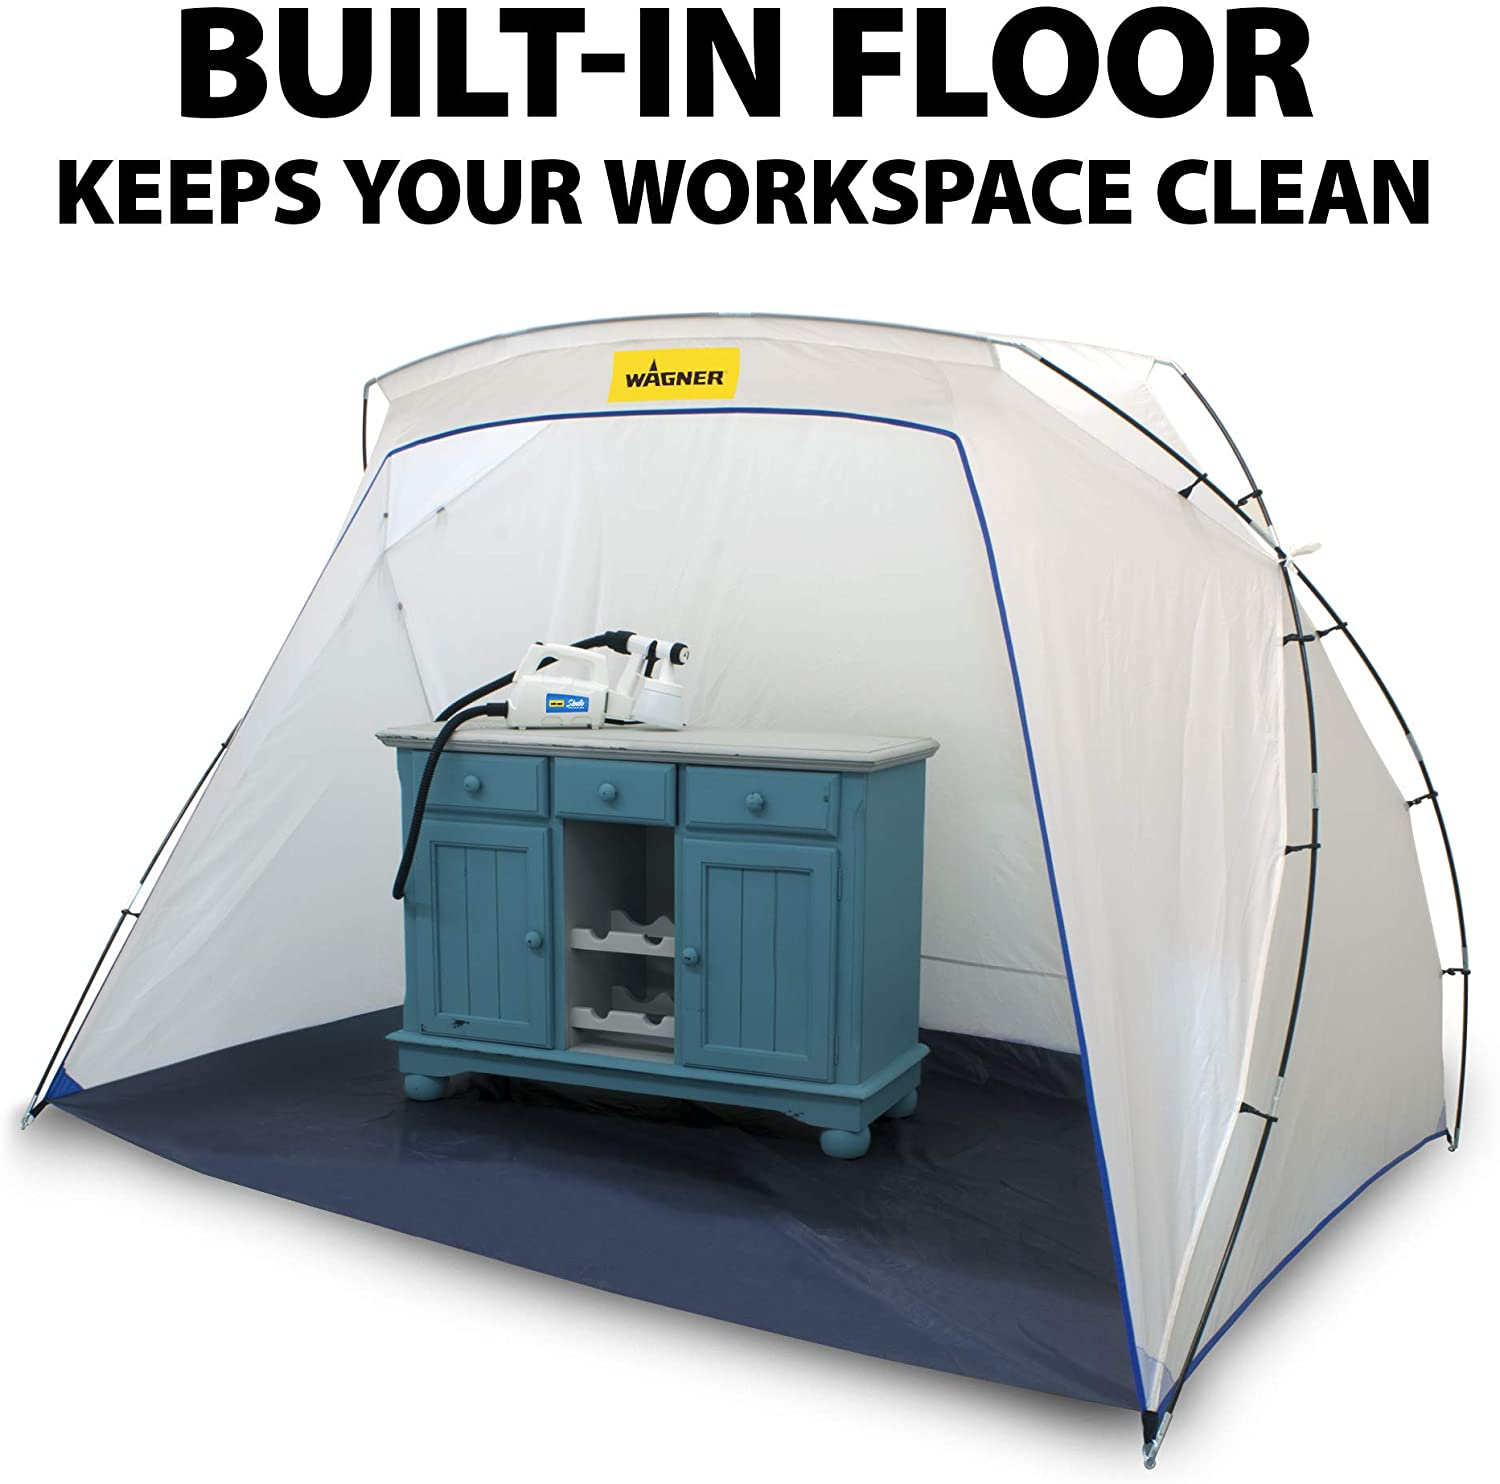 Amazon Com Wagner Studio Spray Tent With Built In Floor Portable Spray Paint Booth Spray Paint Tent Large Paintspray Shelter Tent Paint Spray Booth Tent Home Improvement